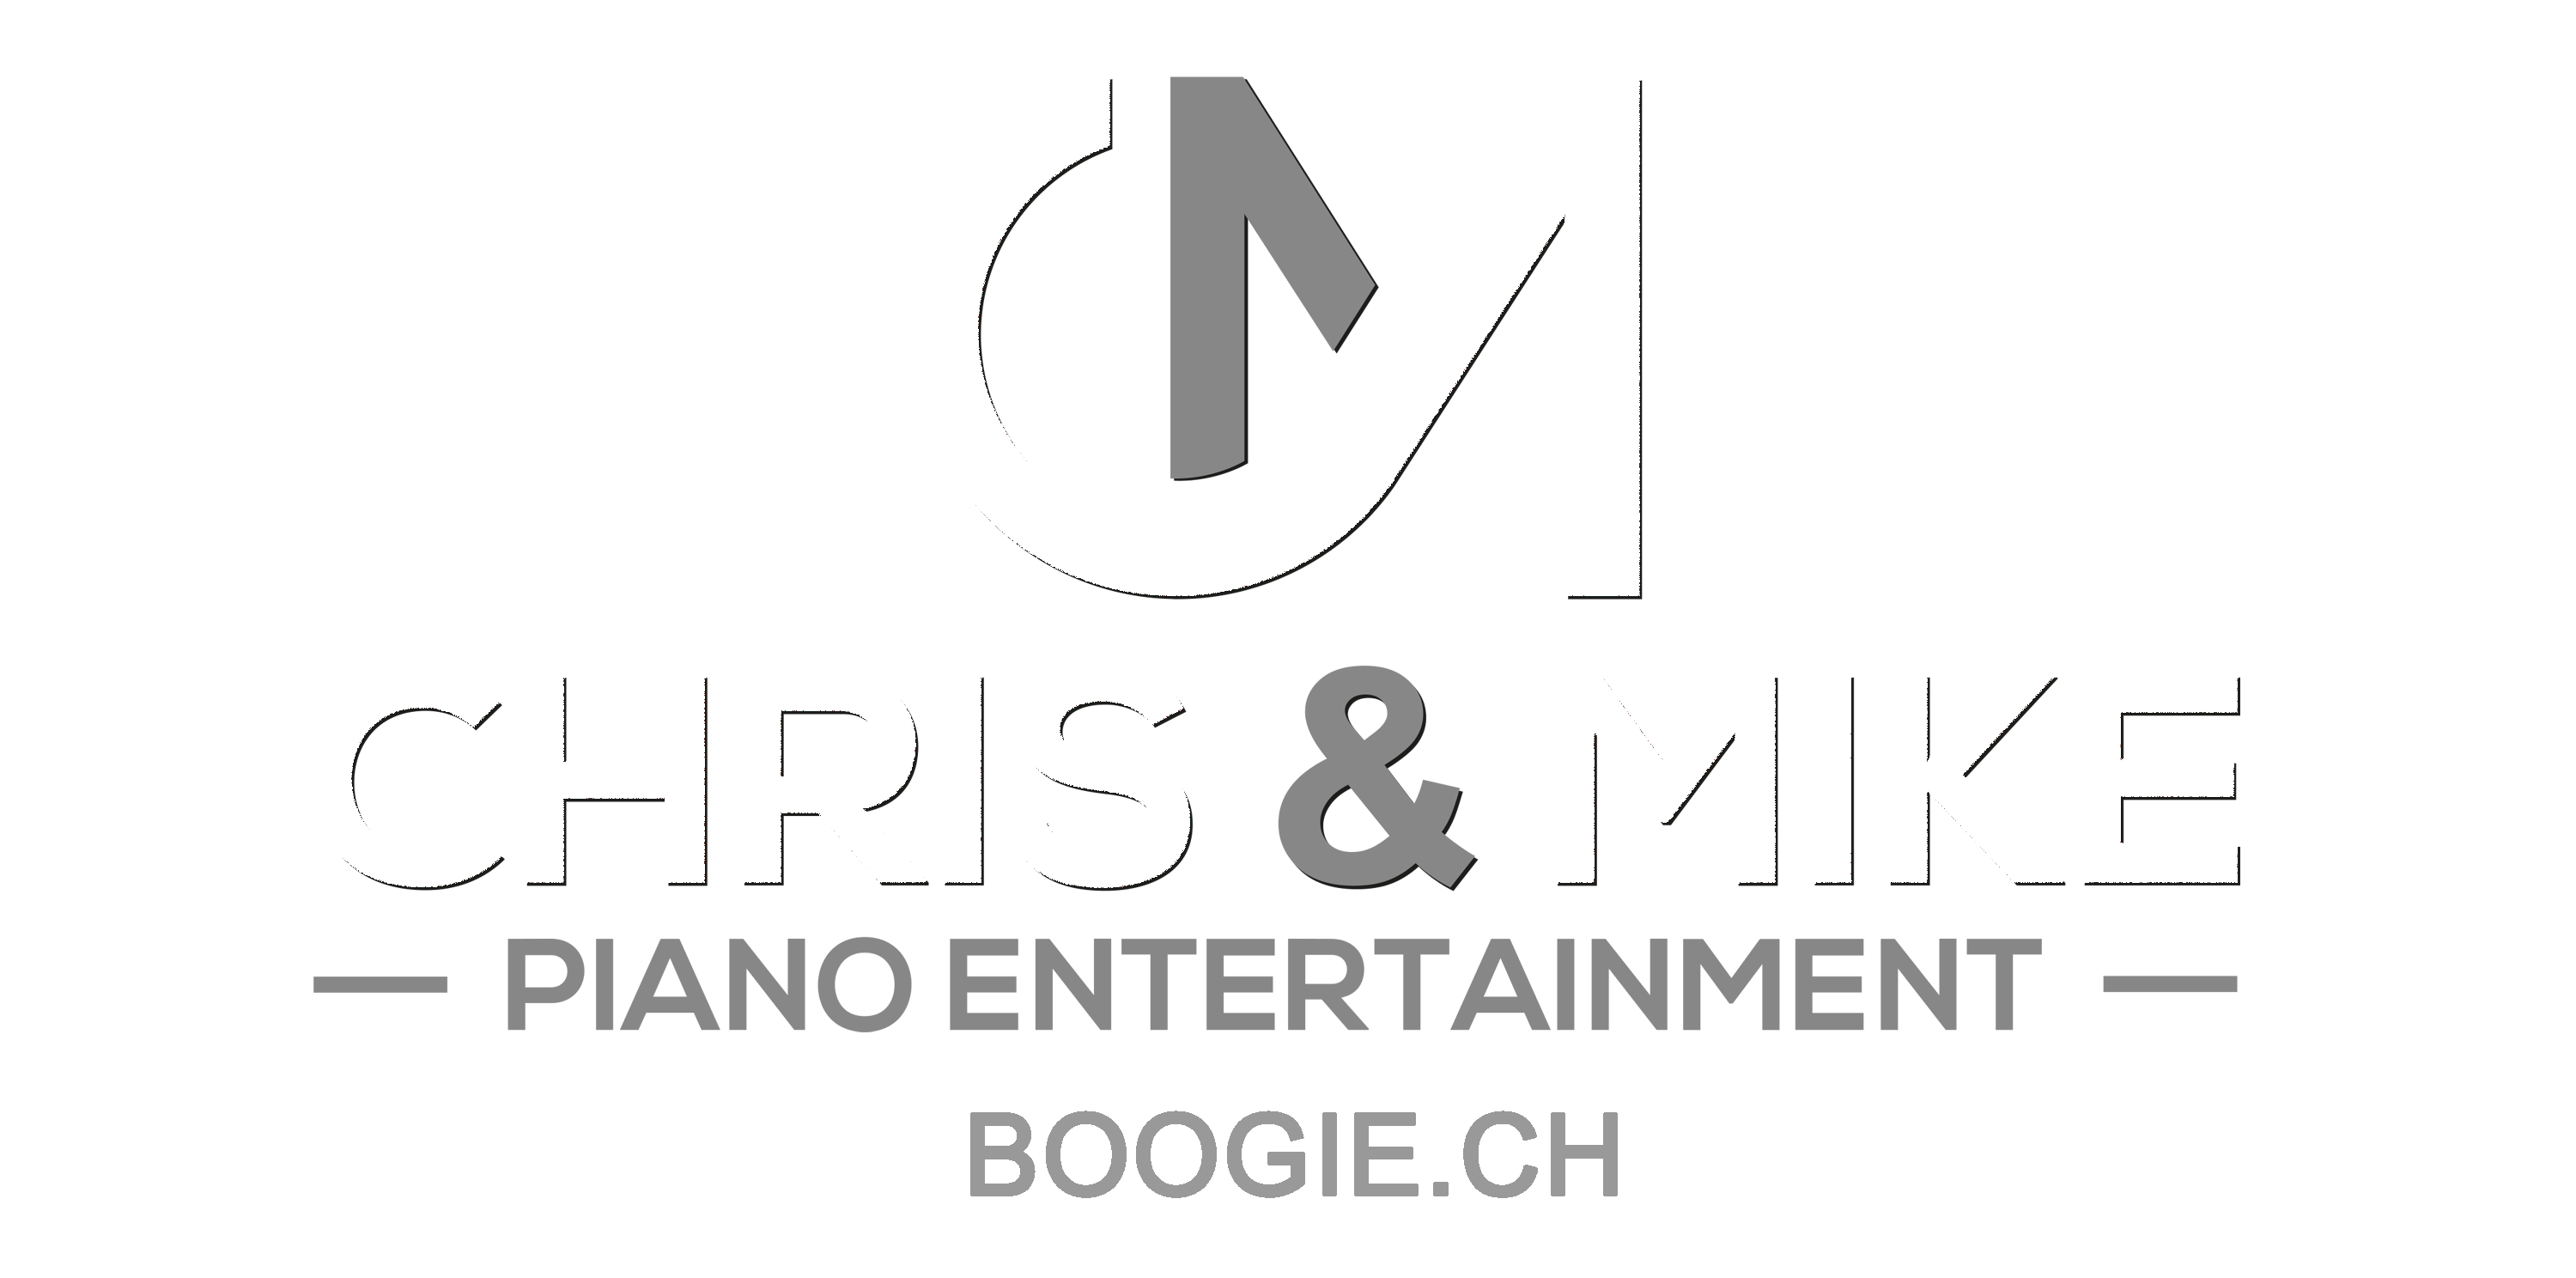 Download Printmittel | boogie ch